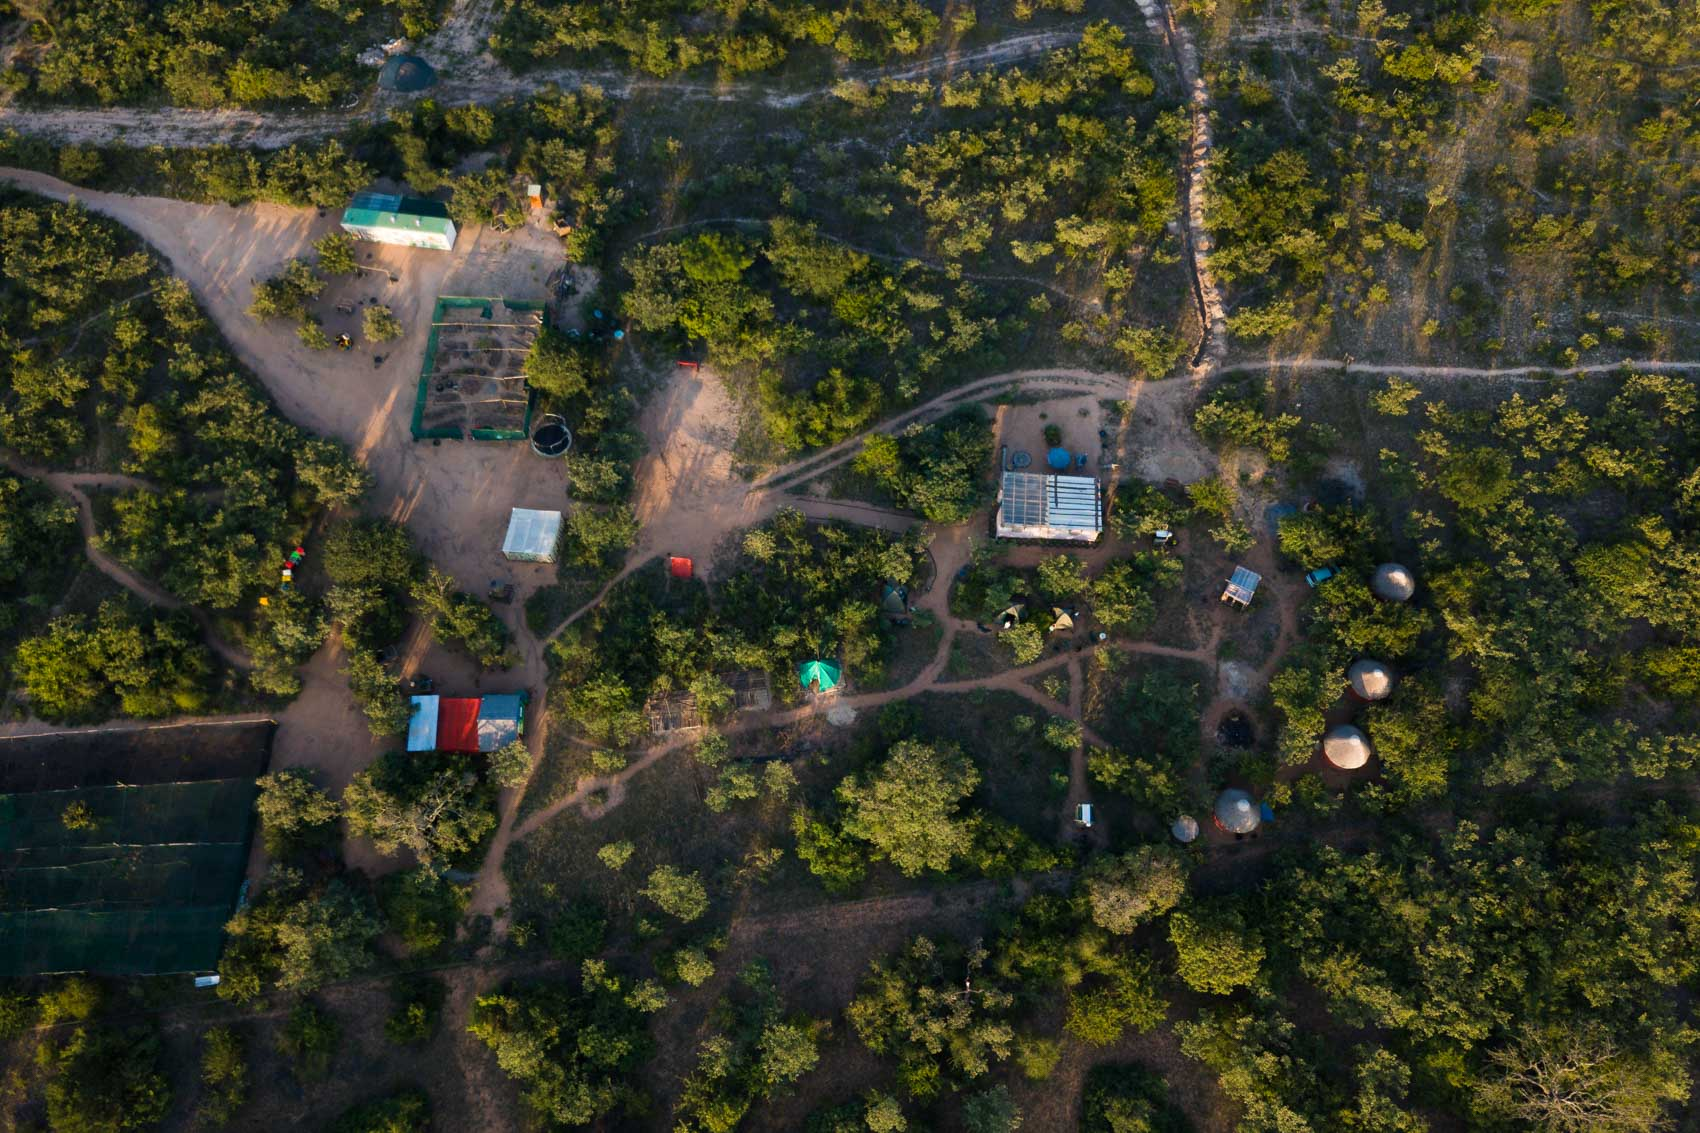 Arial view of Nourish NPO ecovillage in South Africa